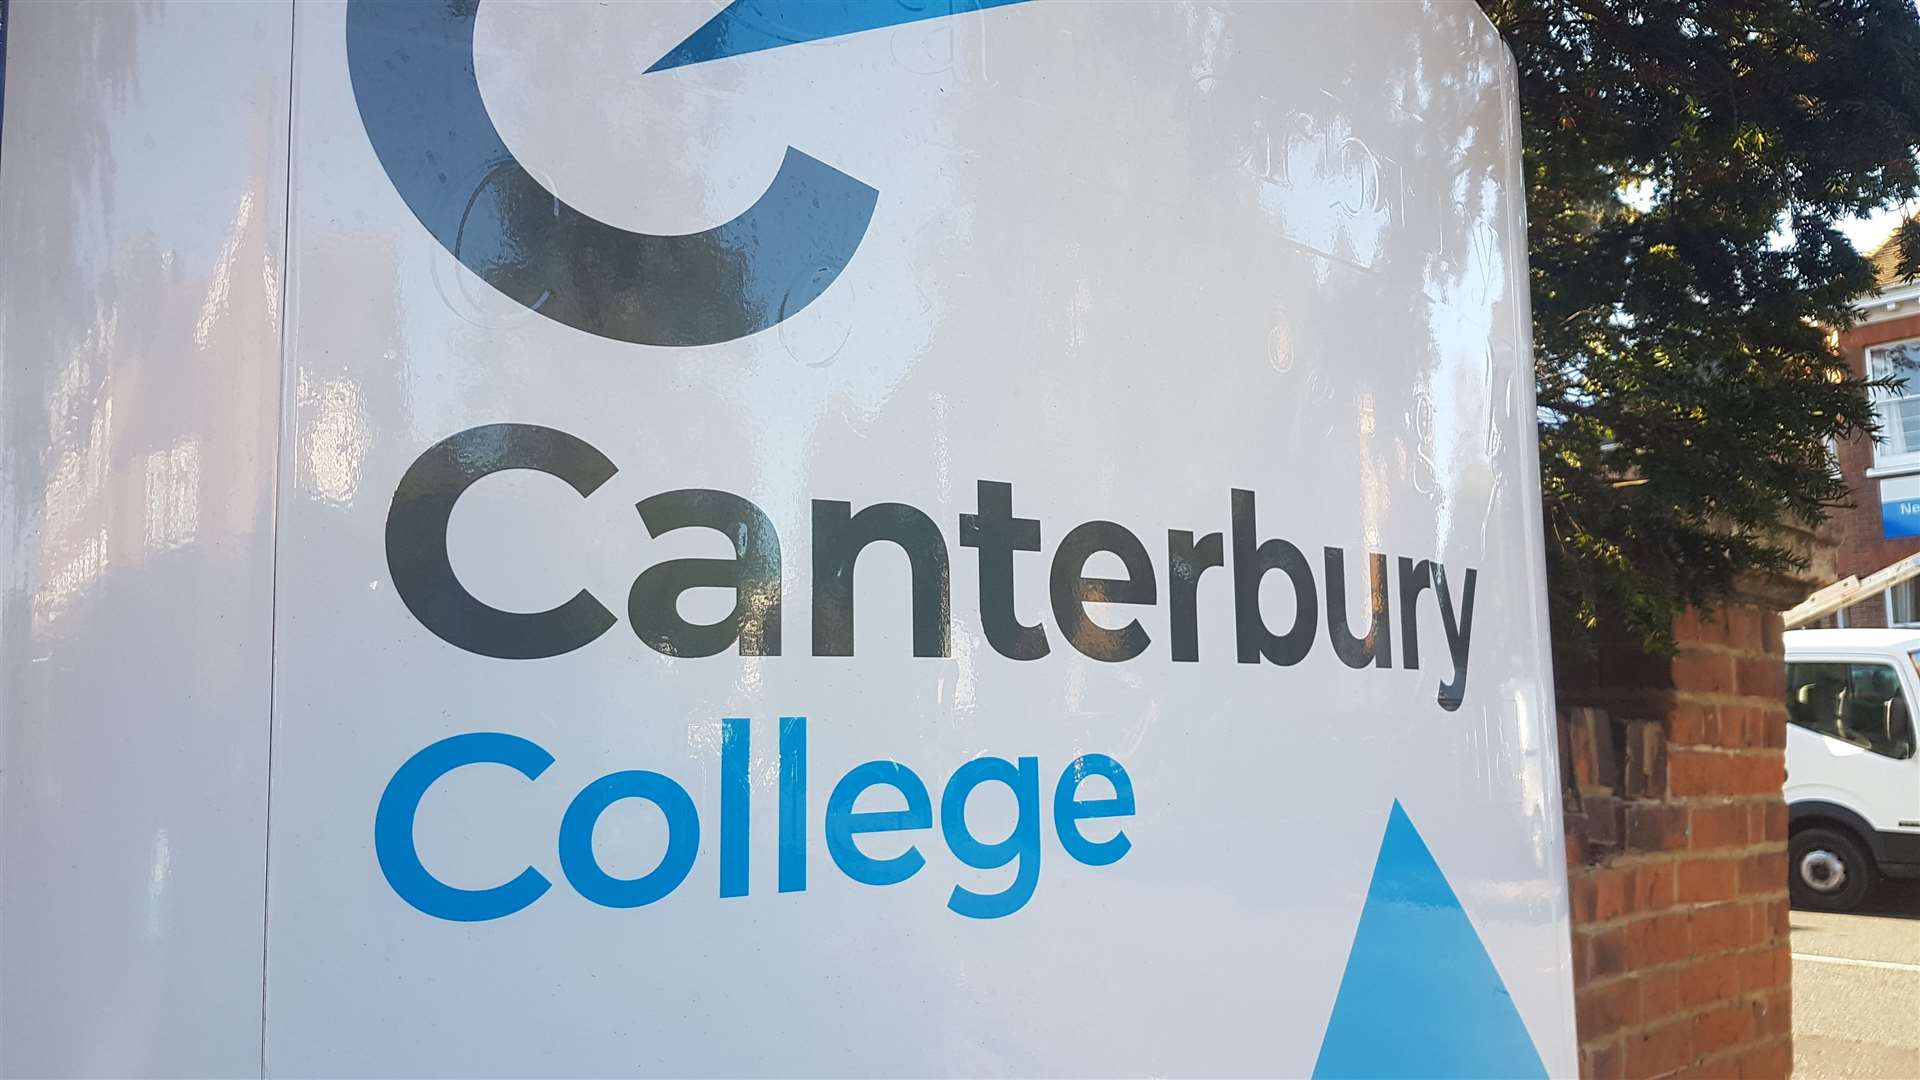 Canterbury College is part of the EKC Group and will stage the KentJobs Fair